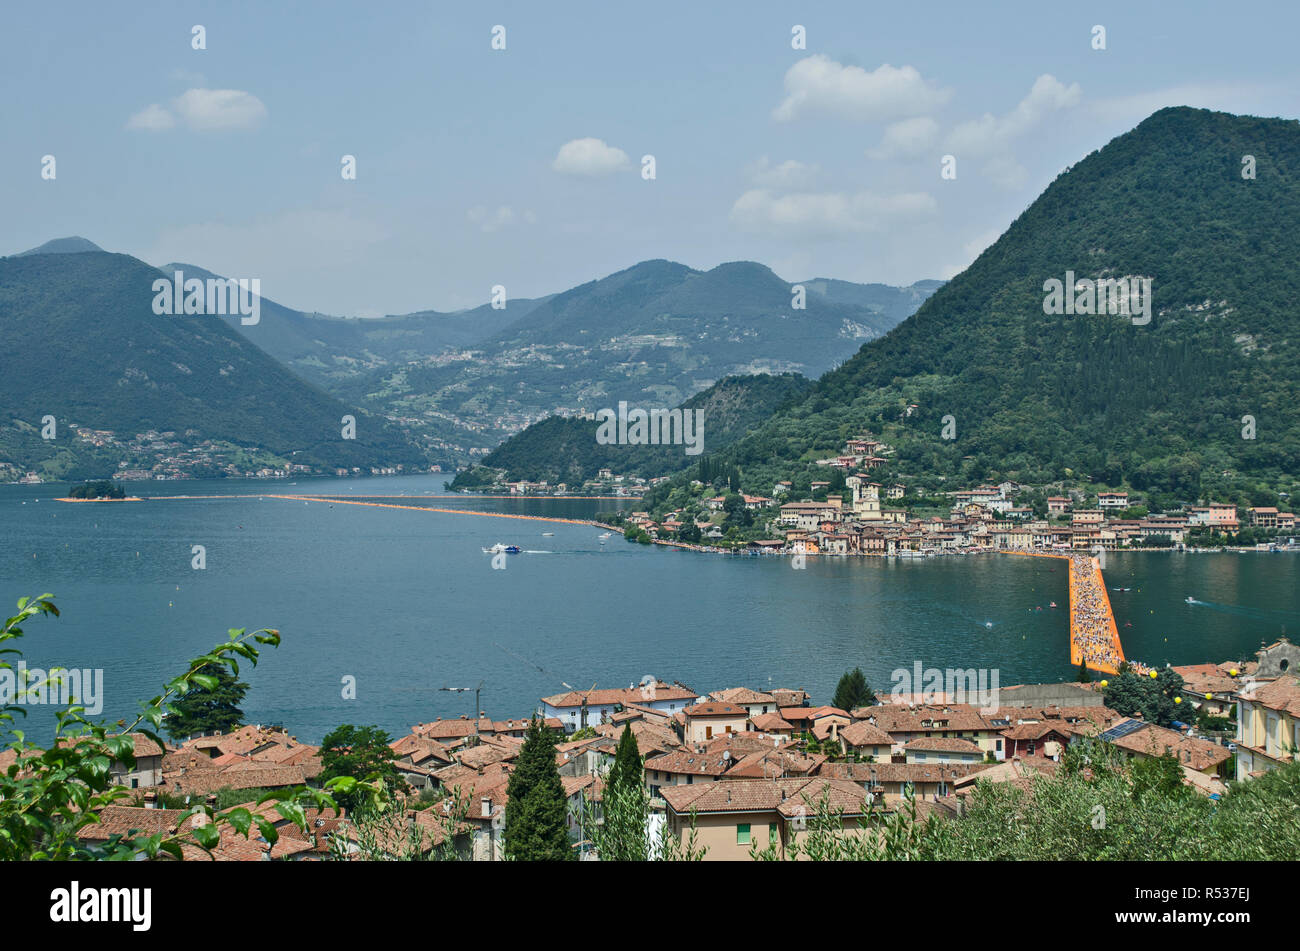 The Floating Piers by Chisto and Jeanne Claude, on Iseo lake between Sulzano e Monte Isola in Italy. It was on site fron June 18th to July 3rd, 2016 - Stock Image